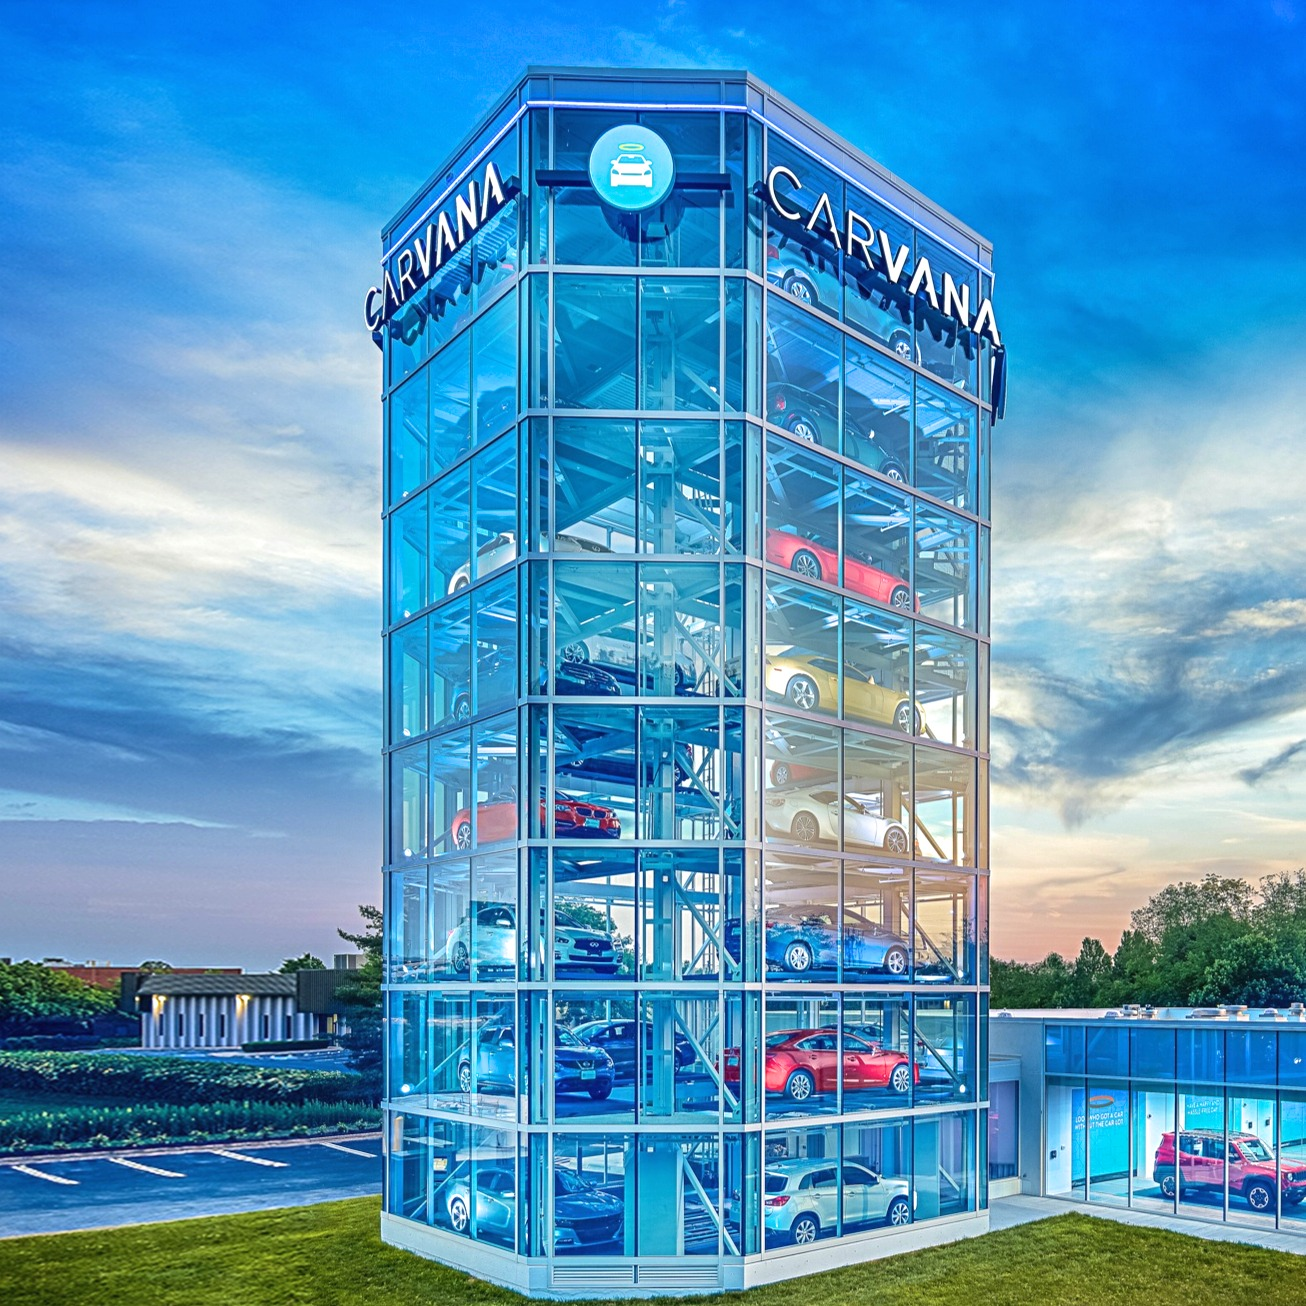 Carvana to Open 'Car Vending Machine' in Gaithersburg | Montgomery